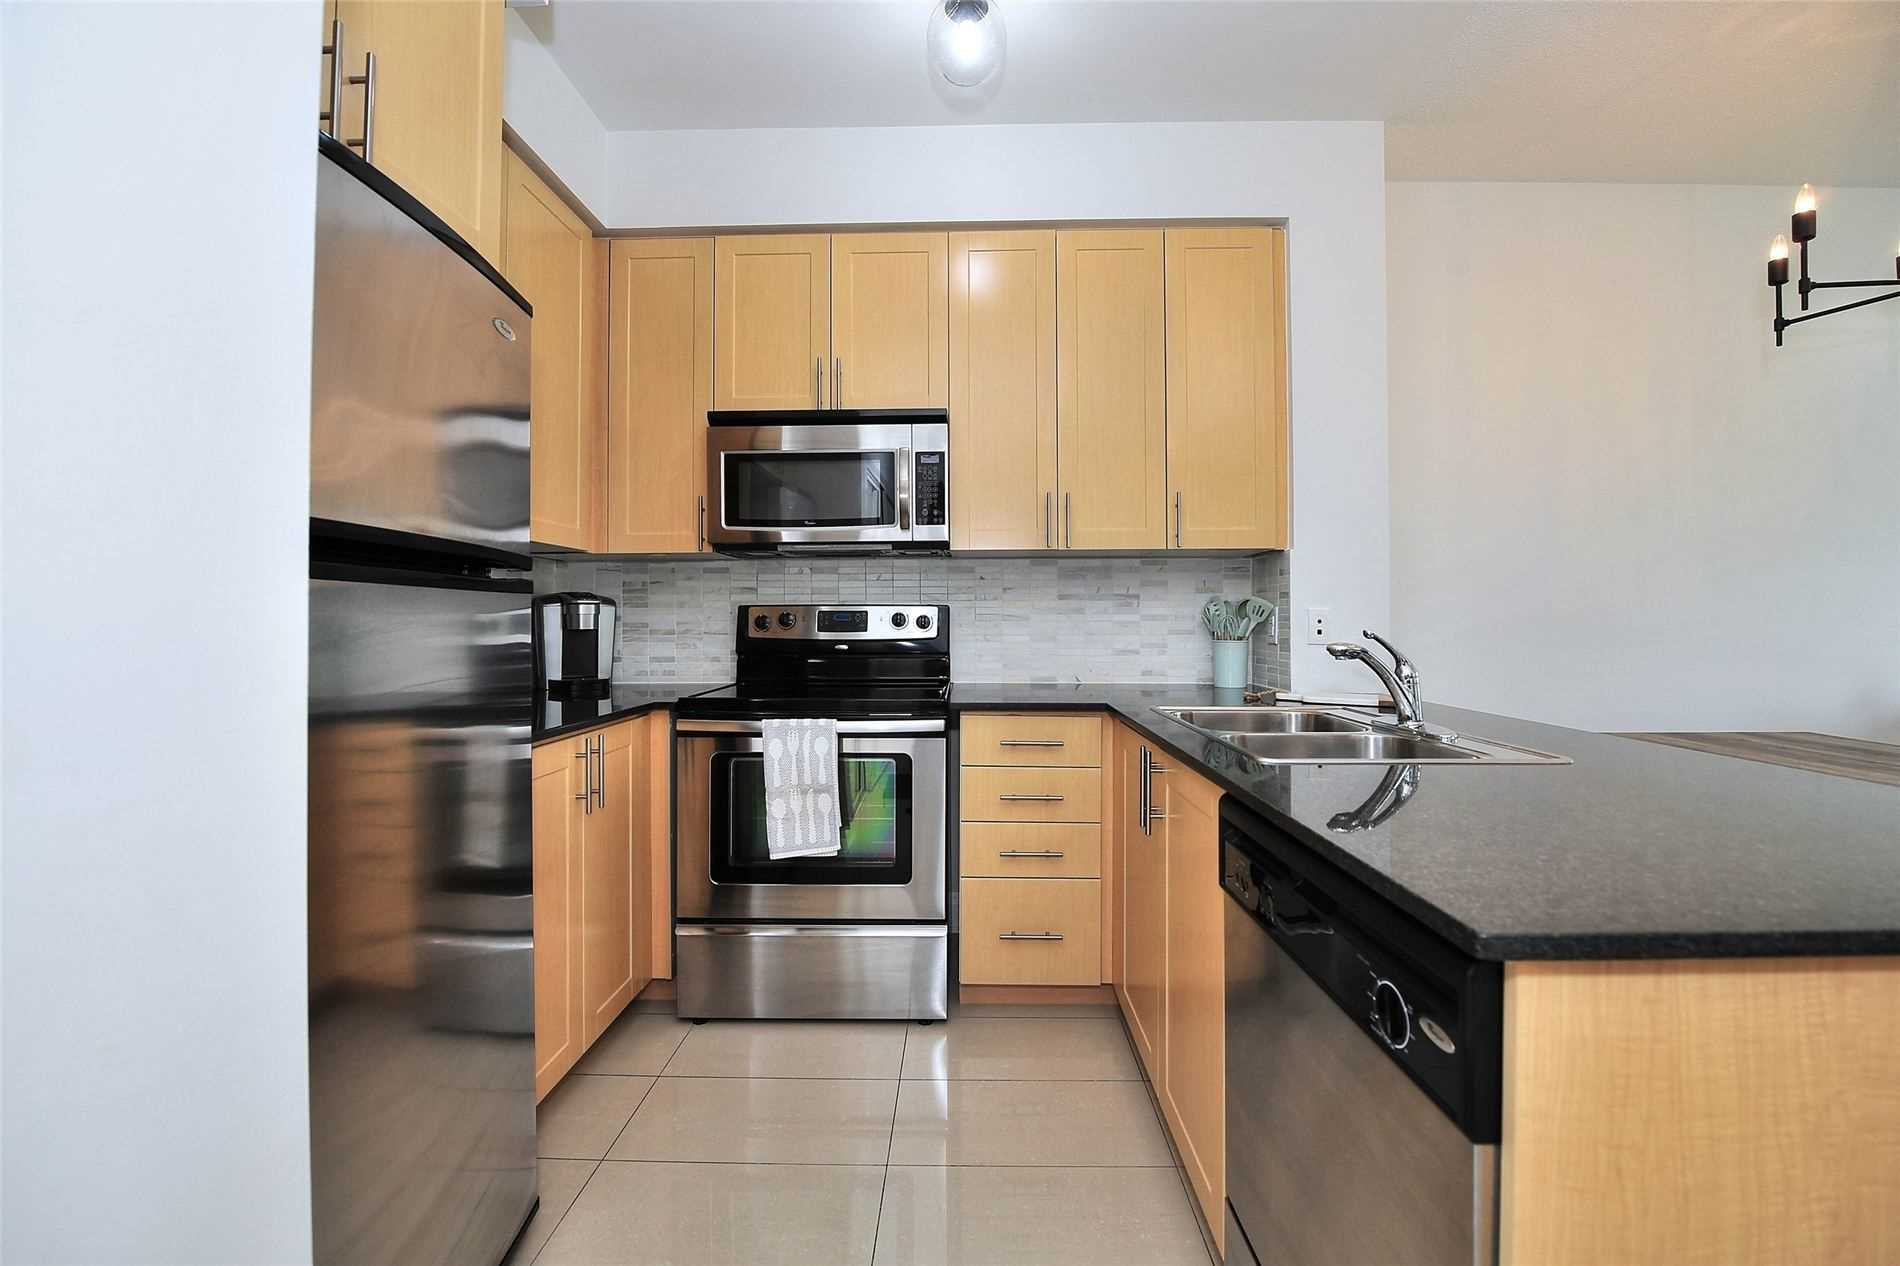 Image 9 of 30 showing inside of 1 Bedroom Condo Apt Apartment for Sale at 30 North Park Rd Unit# 101, Vaughan L4J0G6